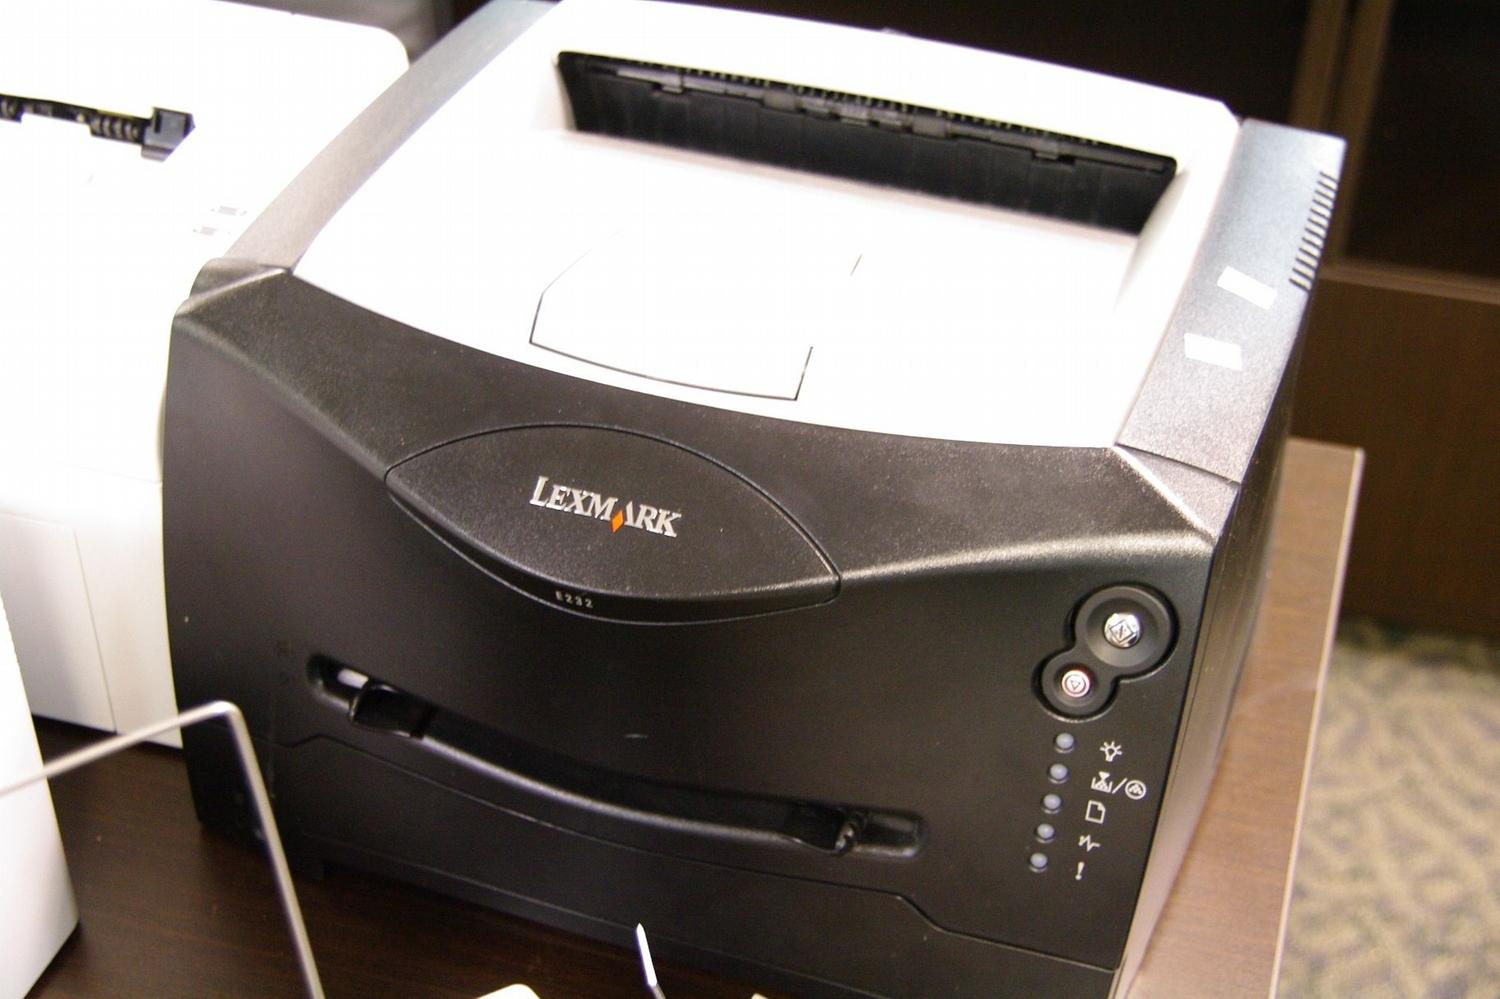 fax machine printer